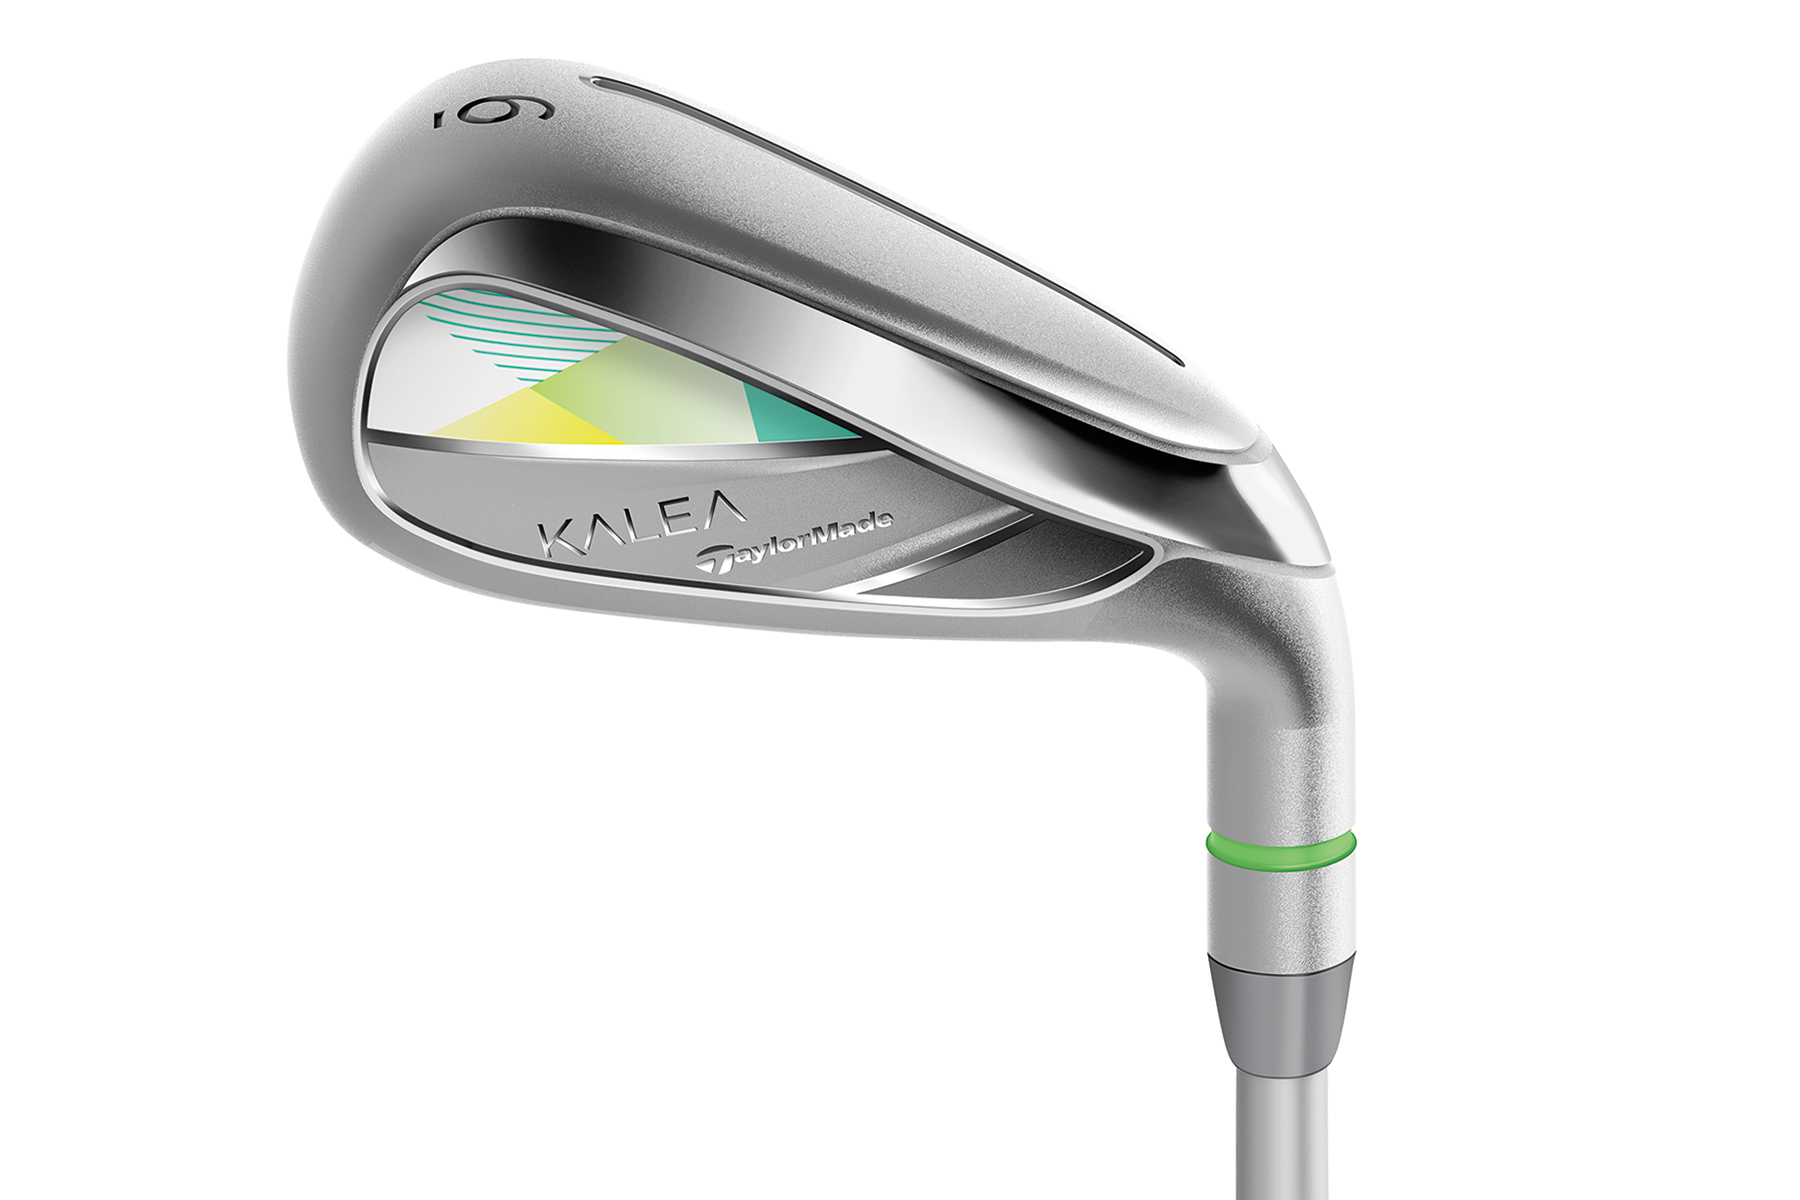 taylormade kalea ladies irons graphite 6 sw from american golf. Black Bedroom Furniture Sets. Home Design Ideas